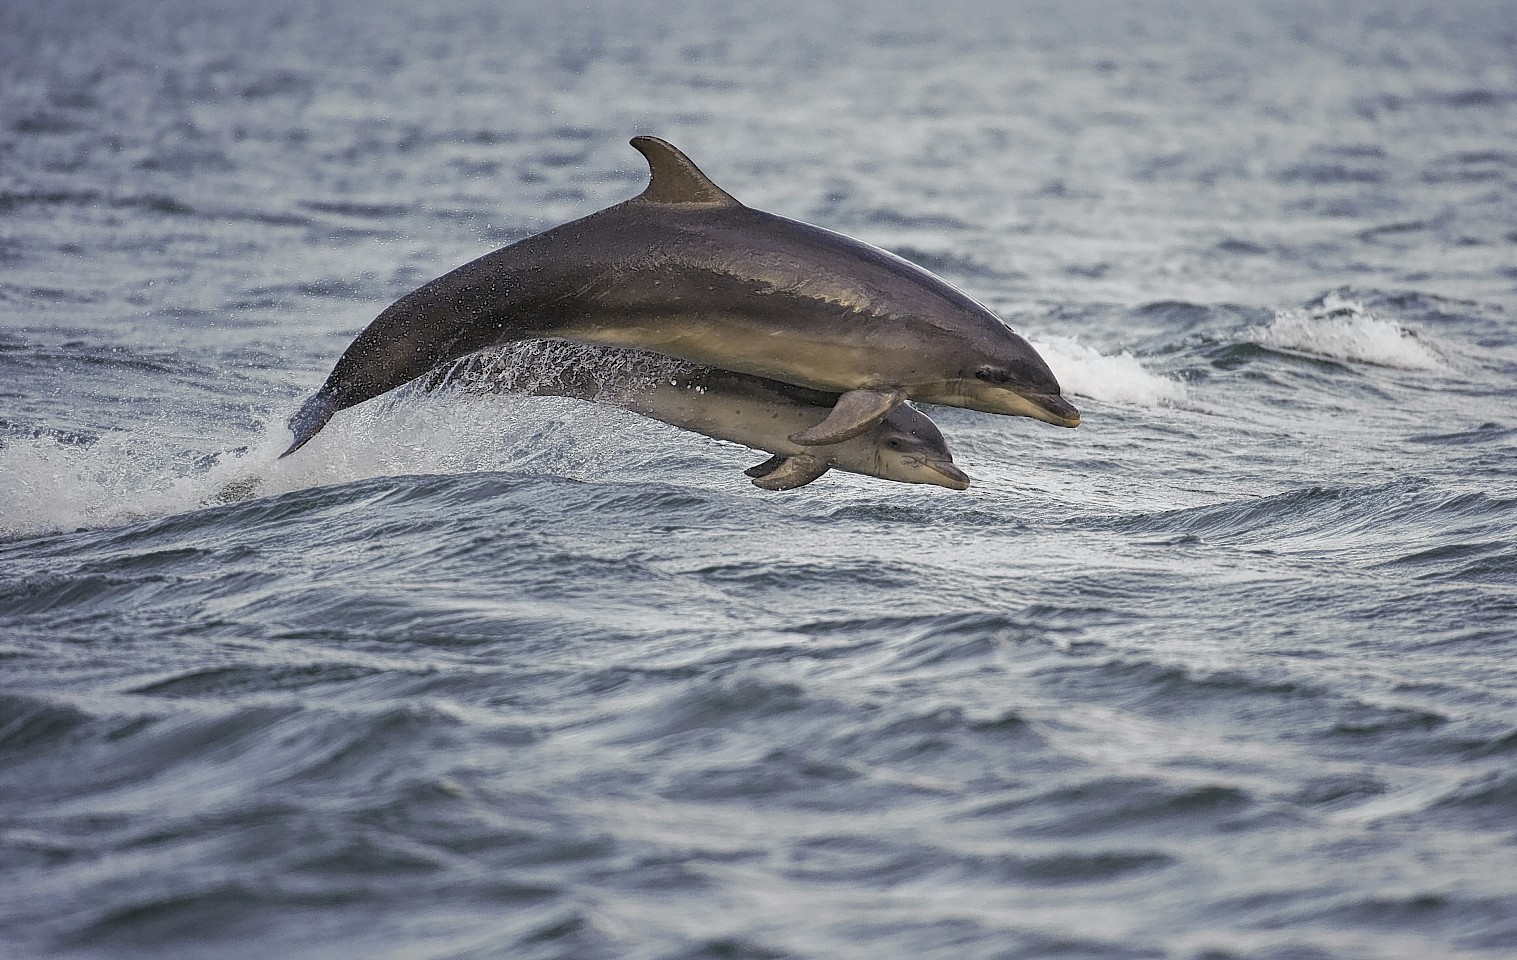 Bottlenose dolphins are